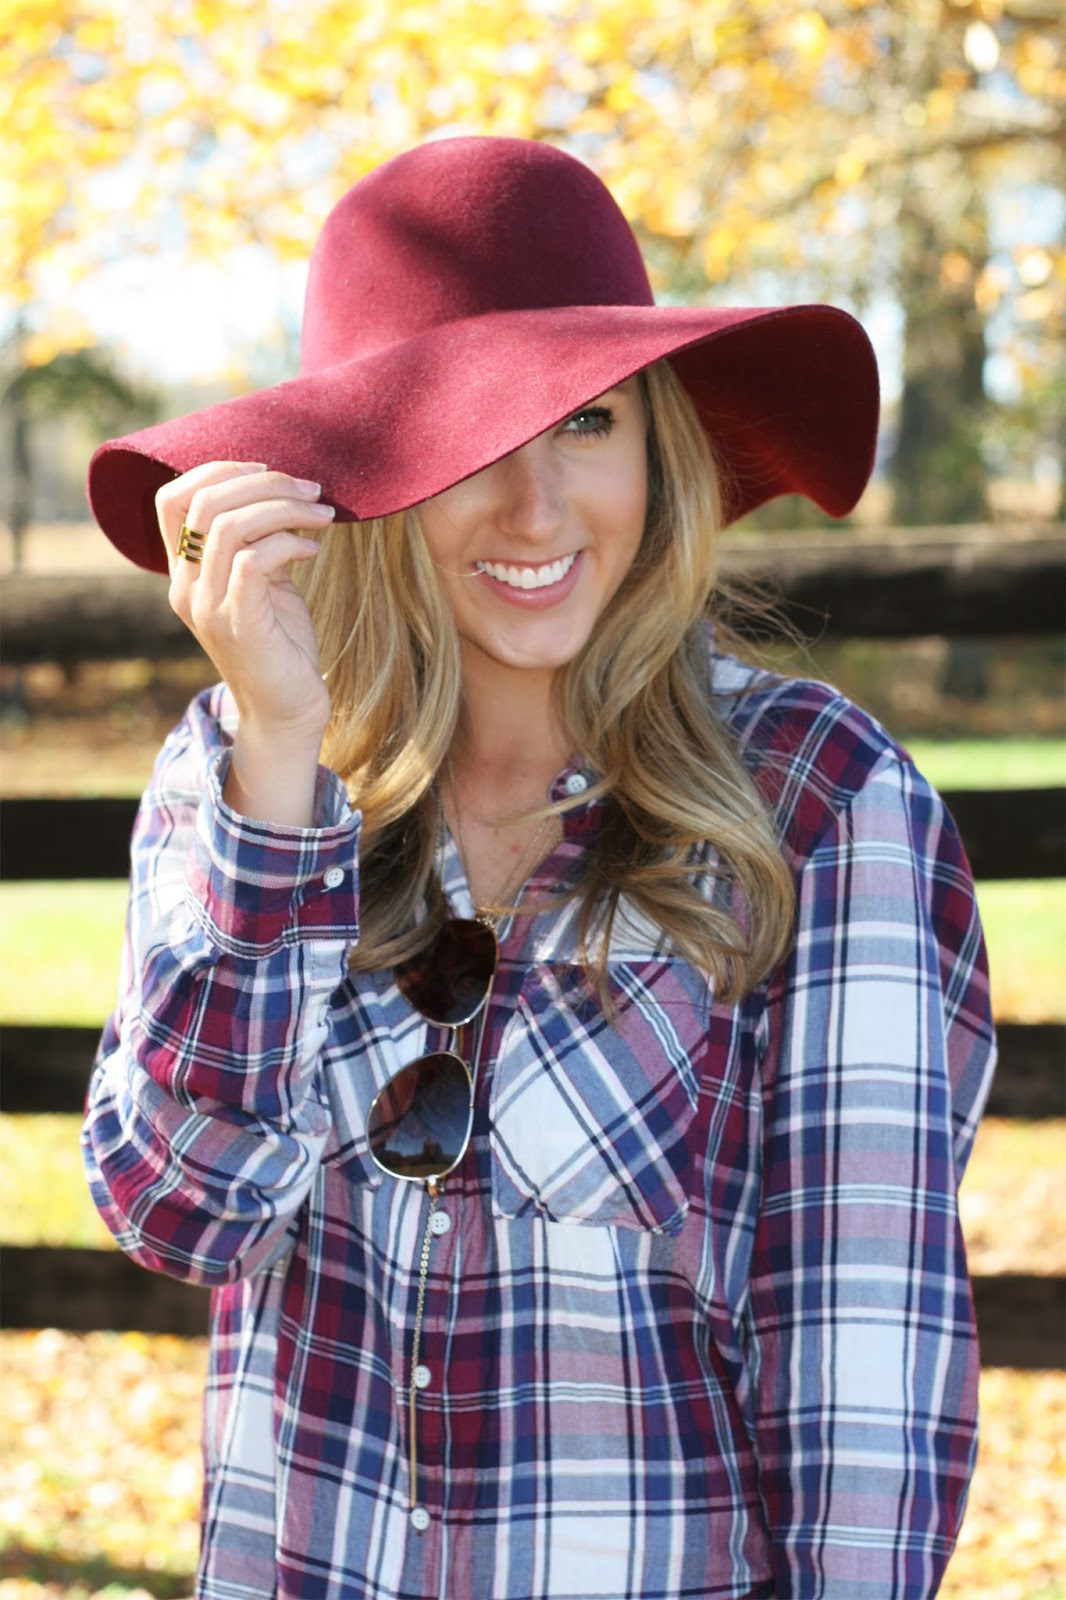 adorable-fall-headshot-with-floppy-hat-falling-leaves-and-a-farm